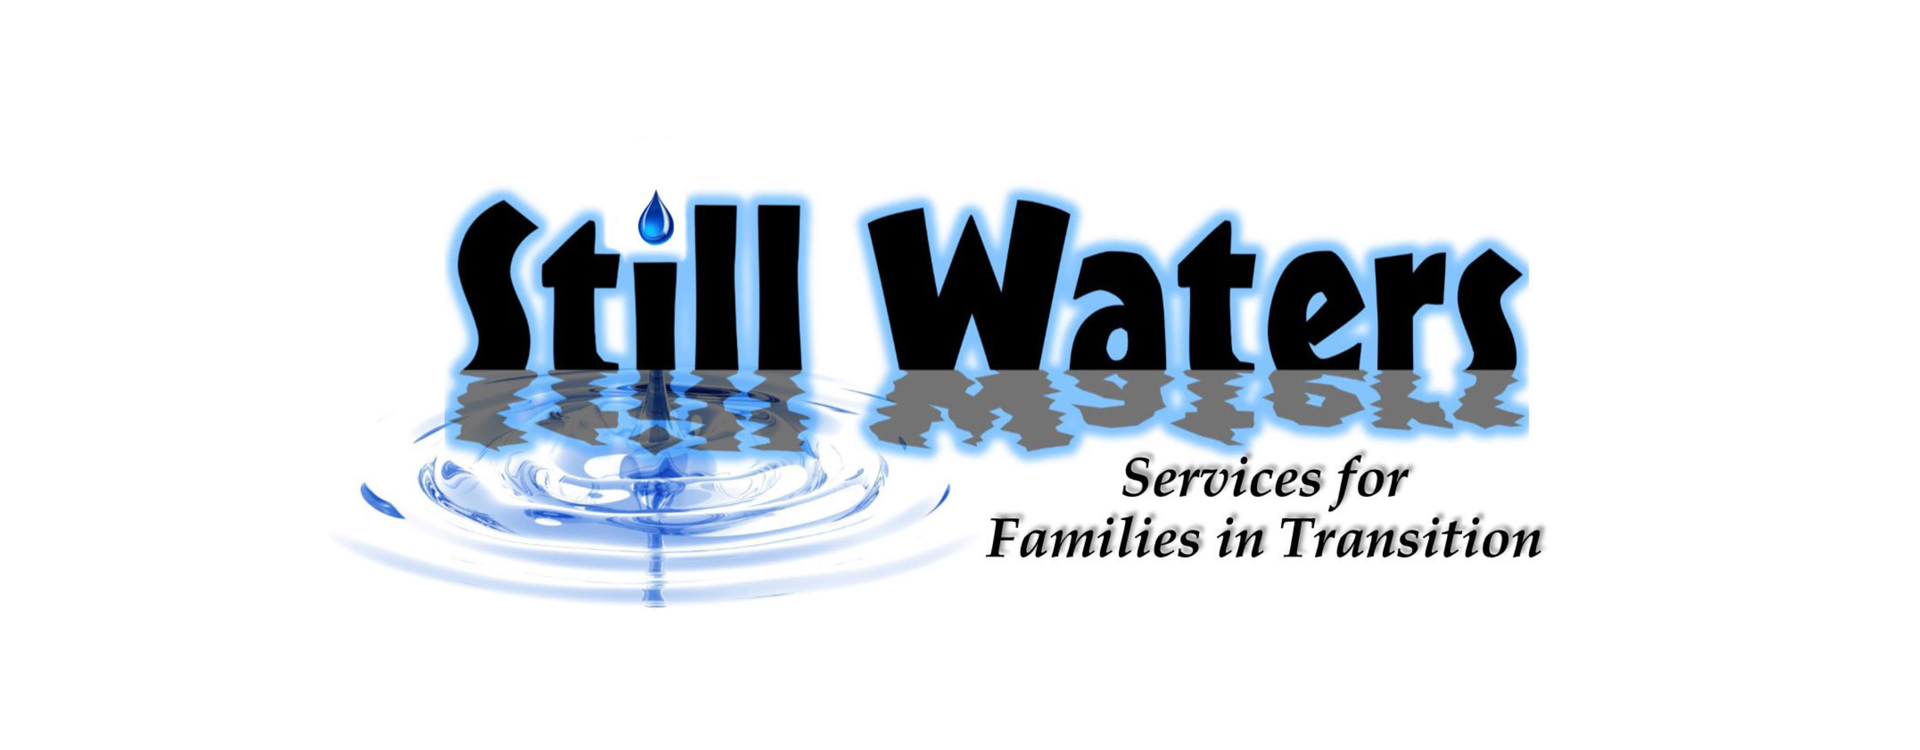 Still Waters, Services for Families in Transition